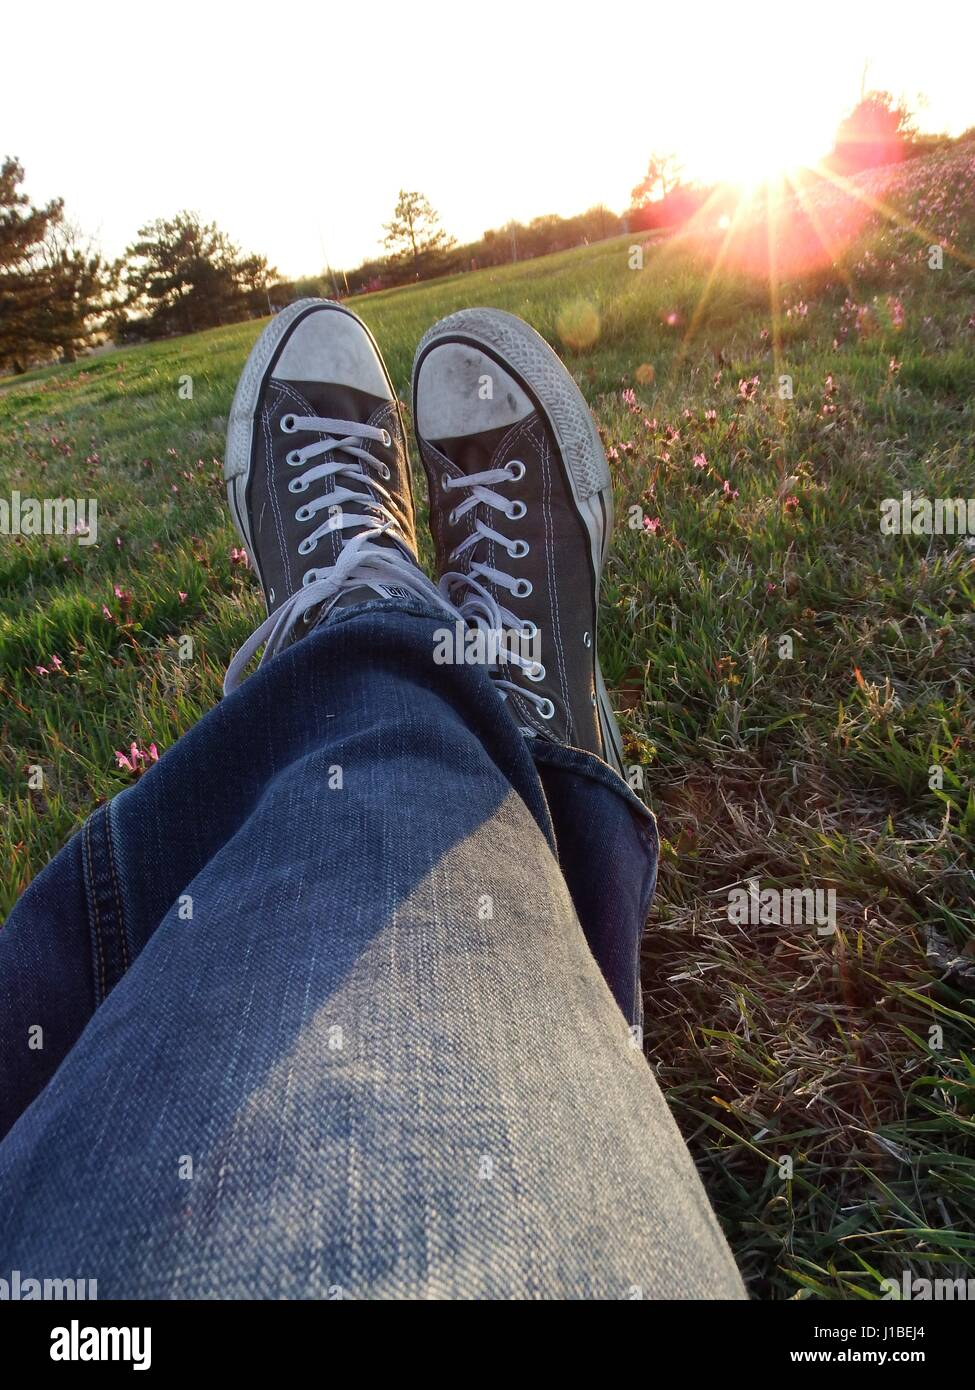 A pov view of shoes sitting in the grass as